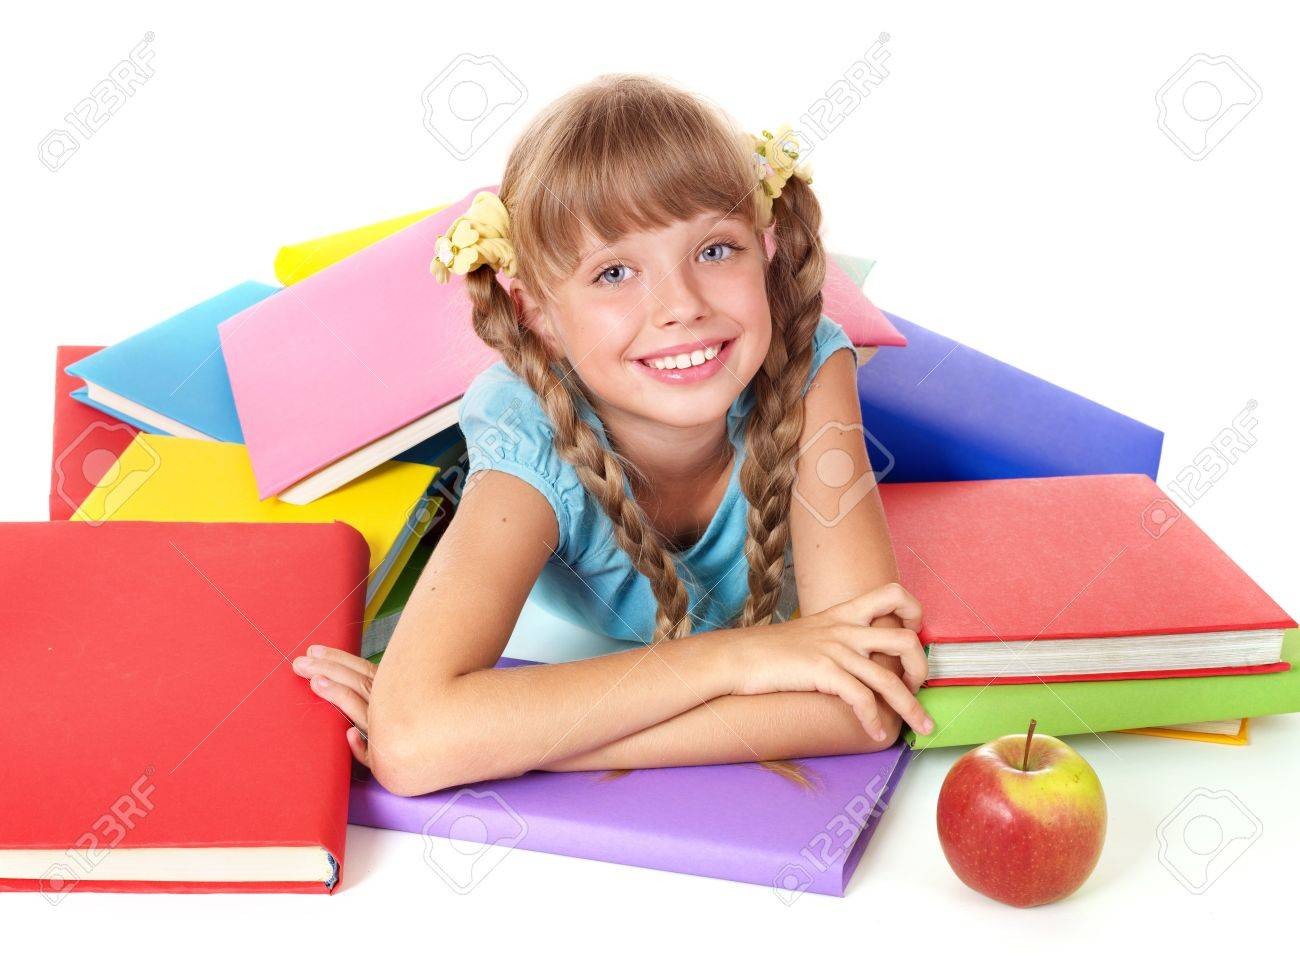 Little girl with pile of books and apple. Isolated. Stock Photo - 7450551